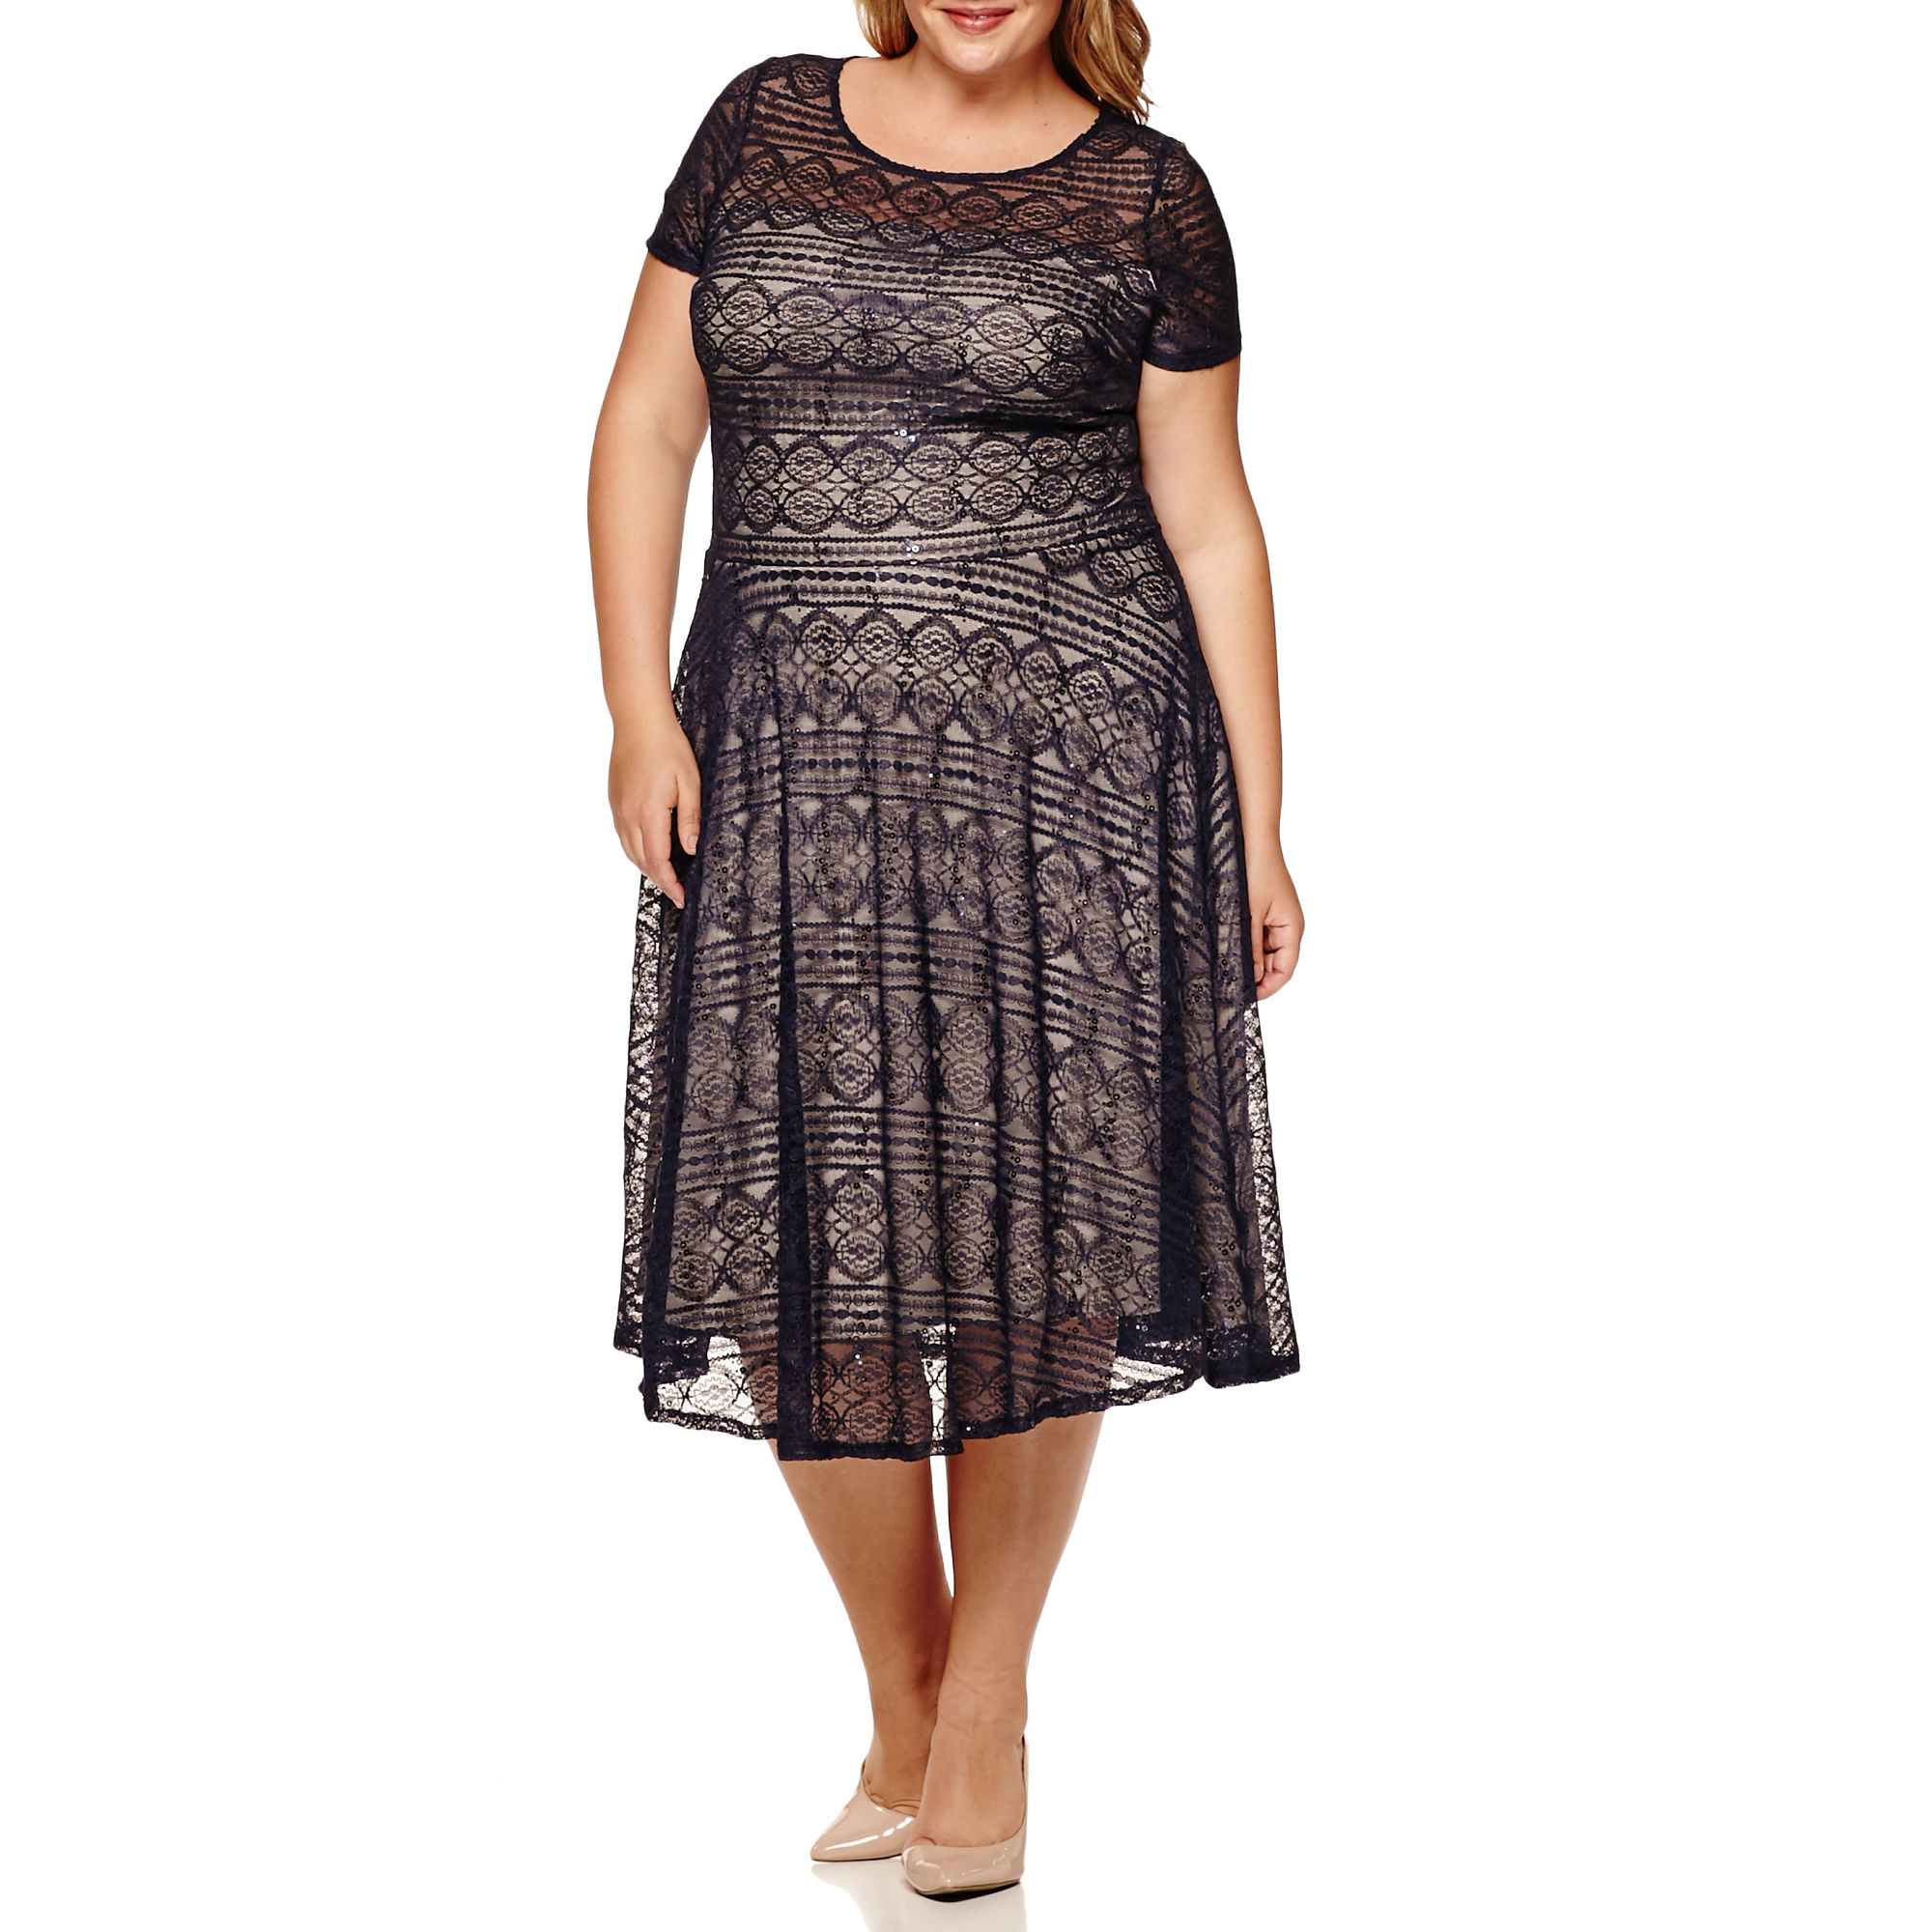 Melrose Short-Sleeve Sequin Lace Fit-and-Flare Dress - Plus